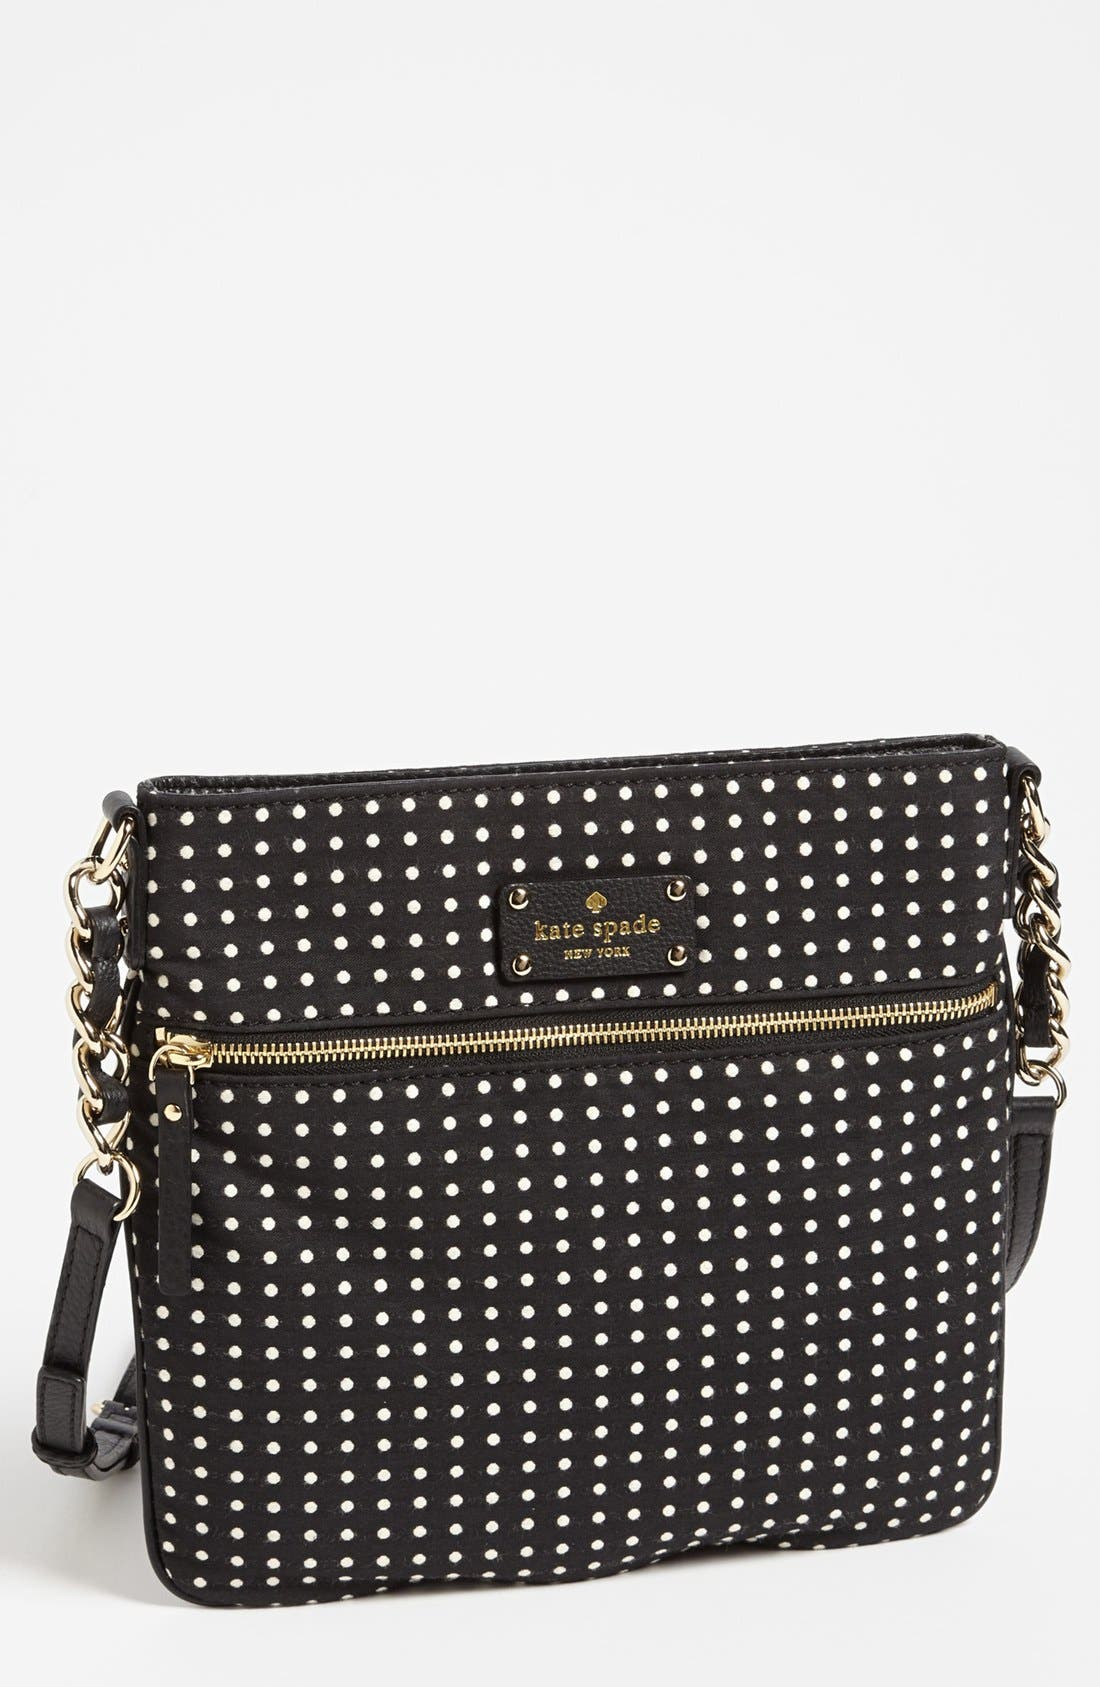 Alternate Image 1 Selected - kate spade new york 'cobble hill - dot ellen' crossbody bag